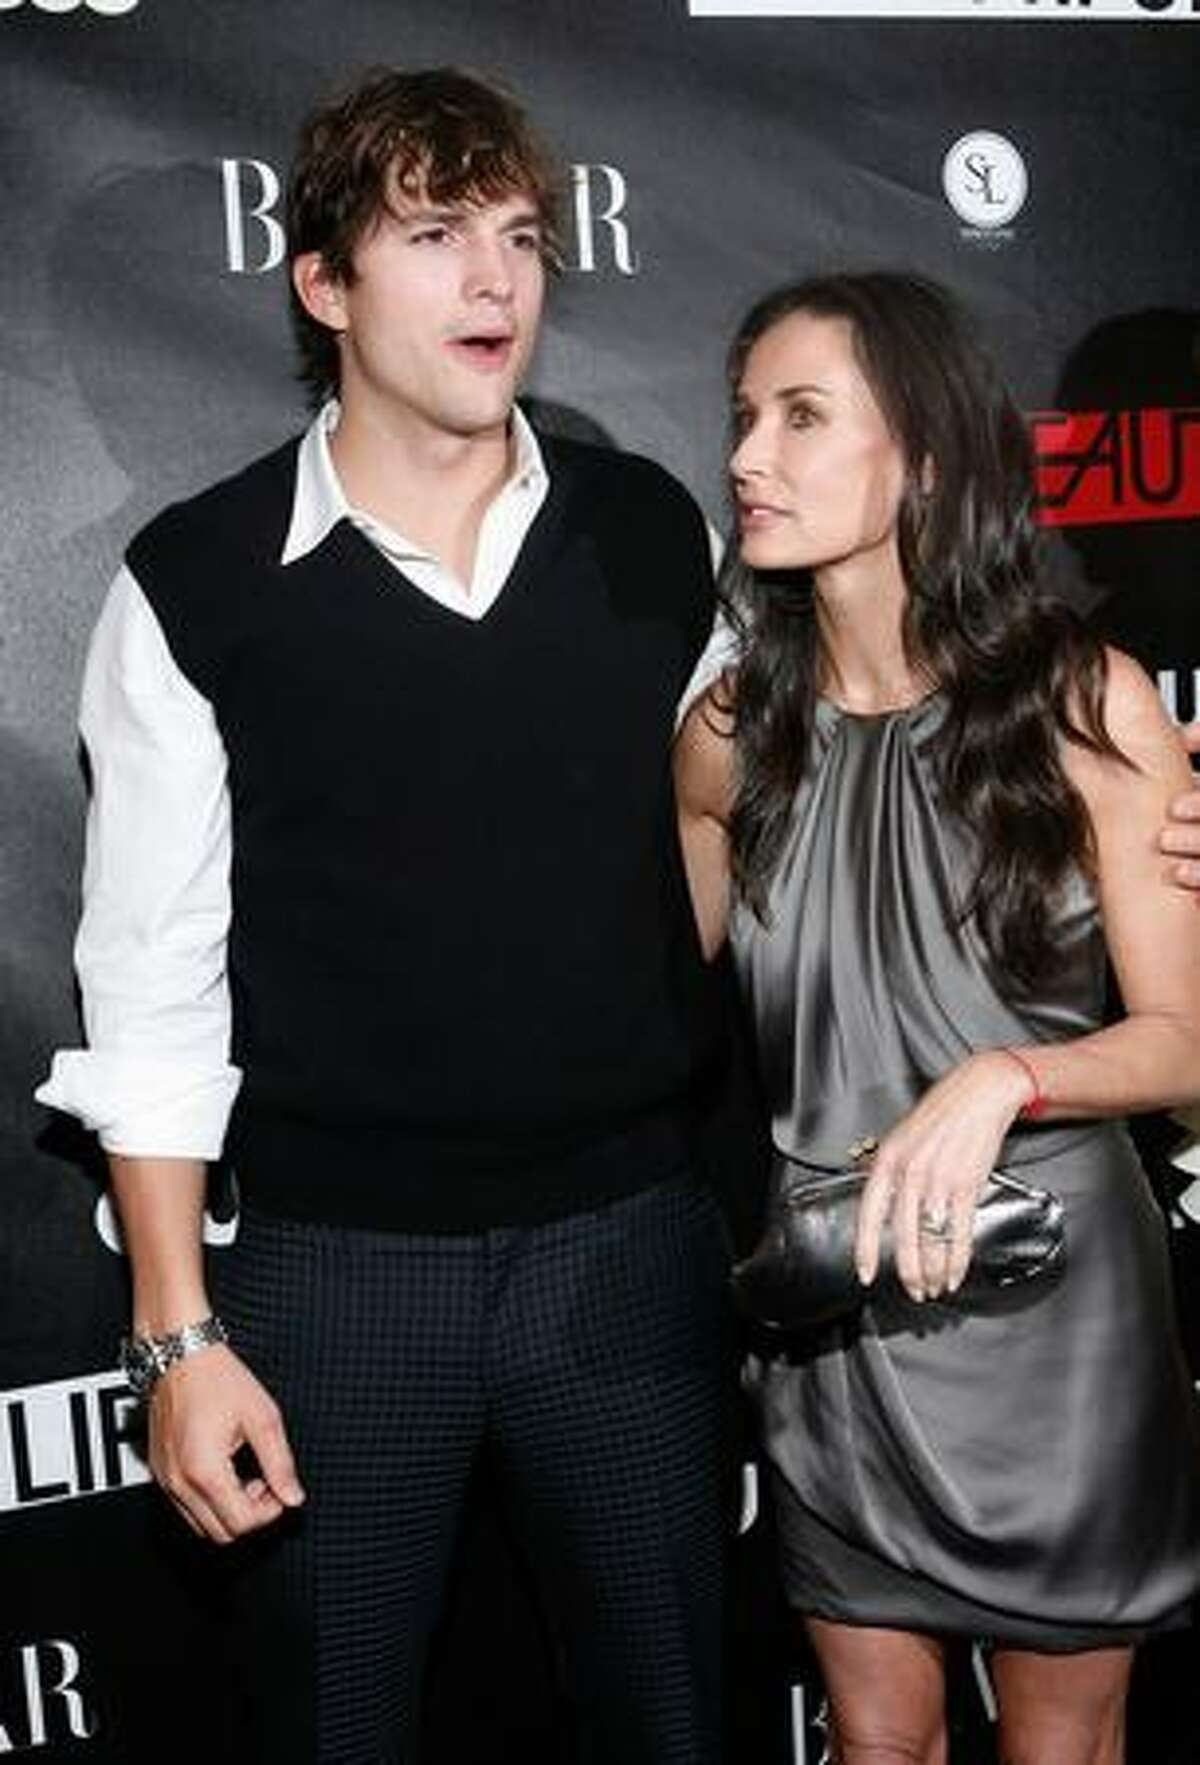 """Actor Ashton Kutcher and actress Demi Moore walk the red carpet during the CW Network celebration of its new series """"The Beautiful Life: TBL"""" at the Simyone Lounge in New York City."""